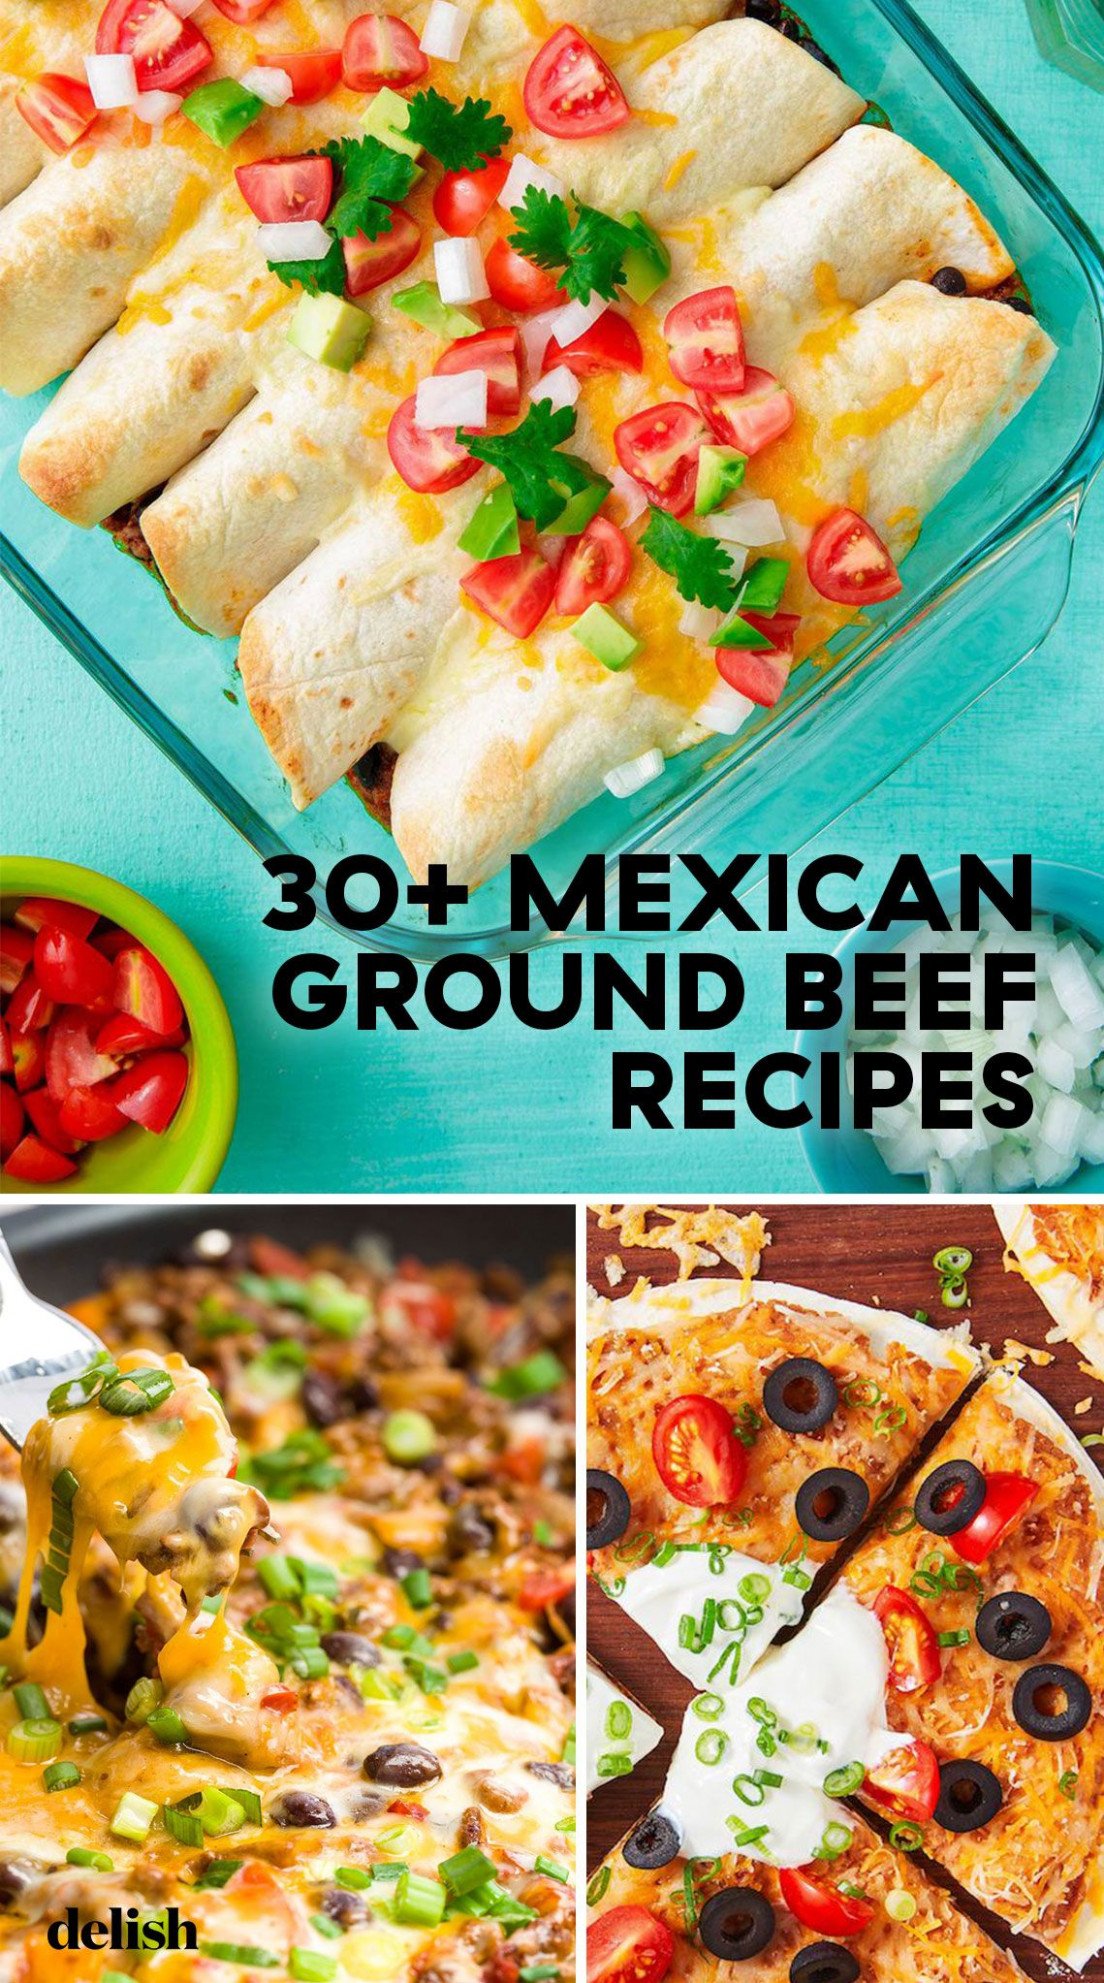 Meaty Mexican Recipes Everyone Should Master | Fast Family ..